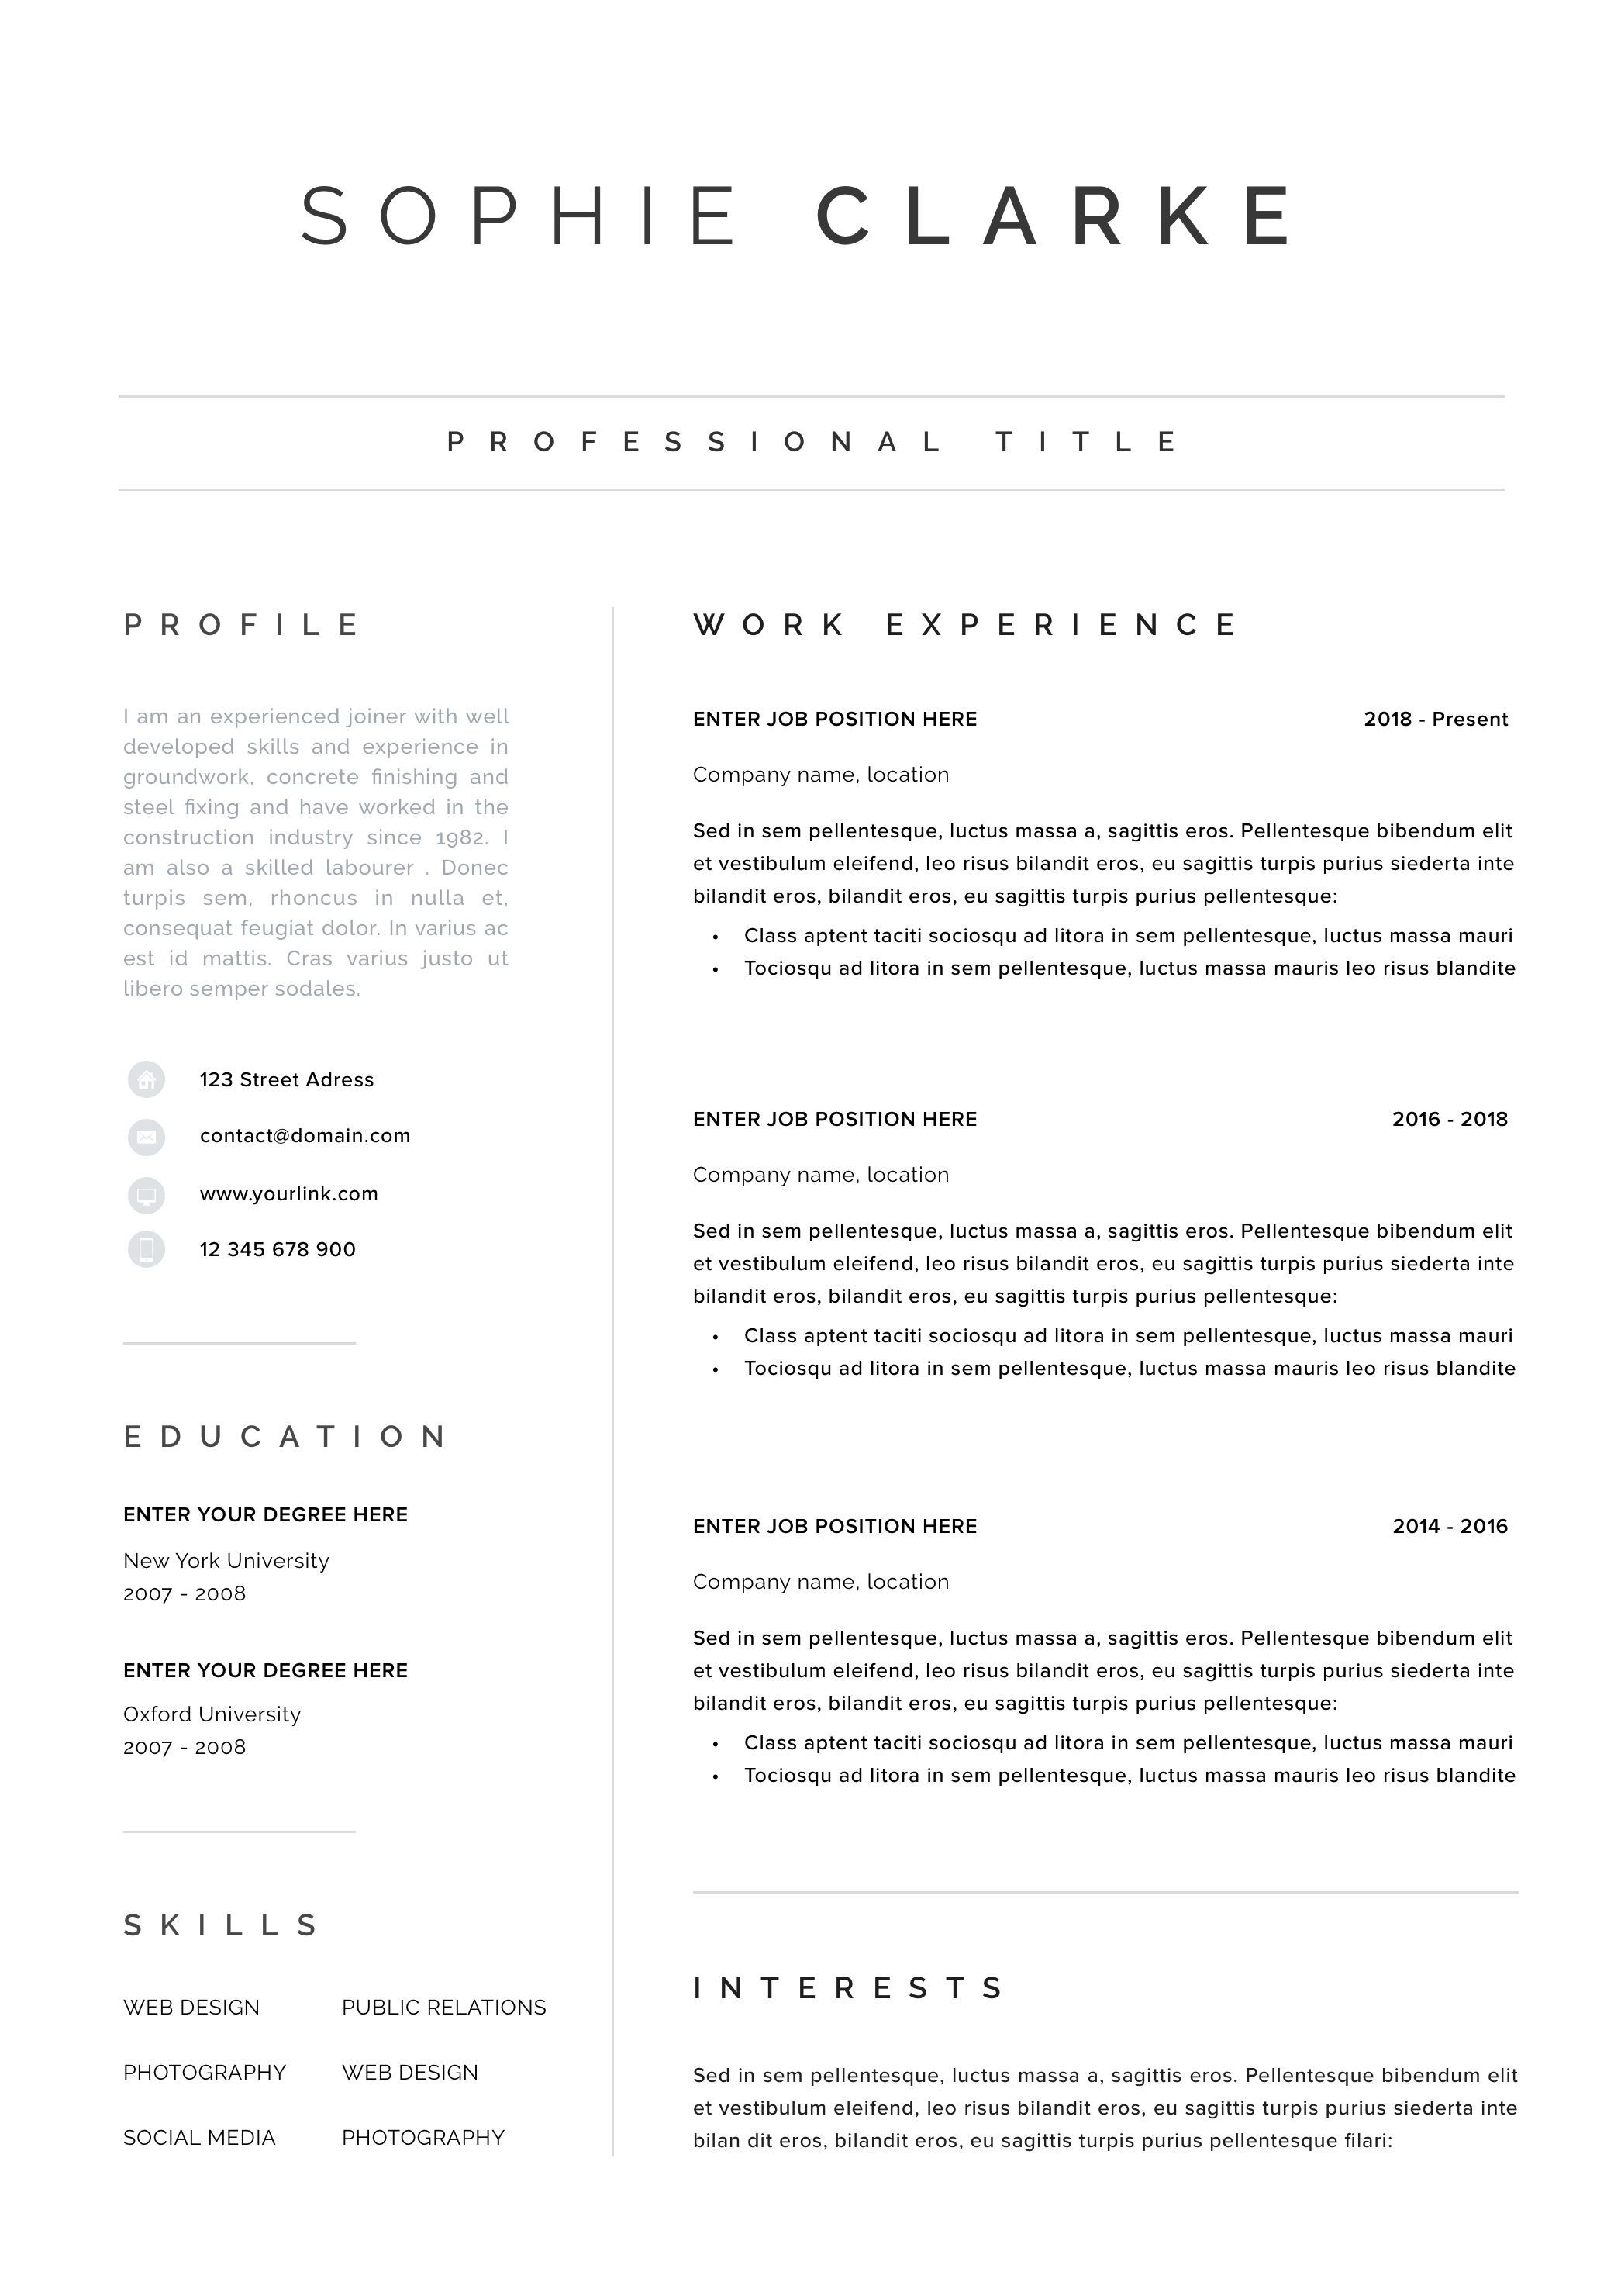 Resume Cv Monica Resume Cv Resume Cover Letter For Resume